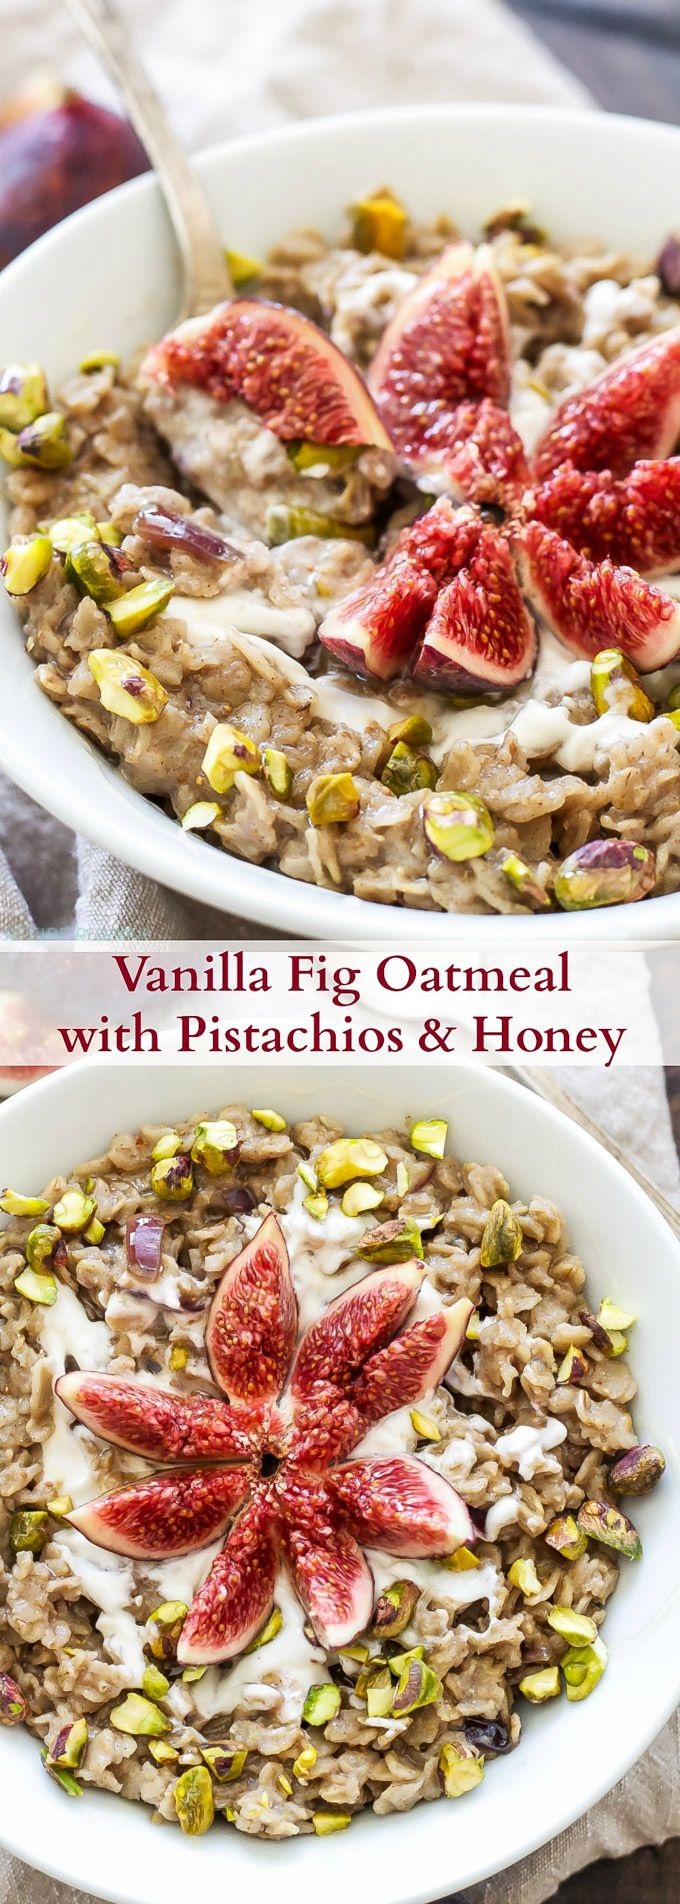 Vanilla Fig Oatmeal with Pistachios and Honey | Take advantage of fresh figs and…